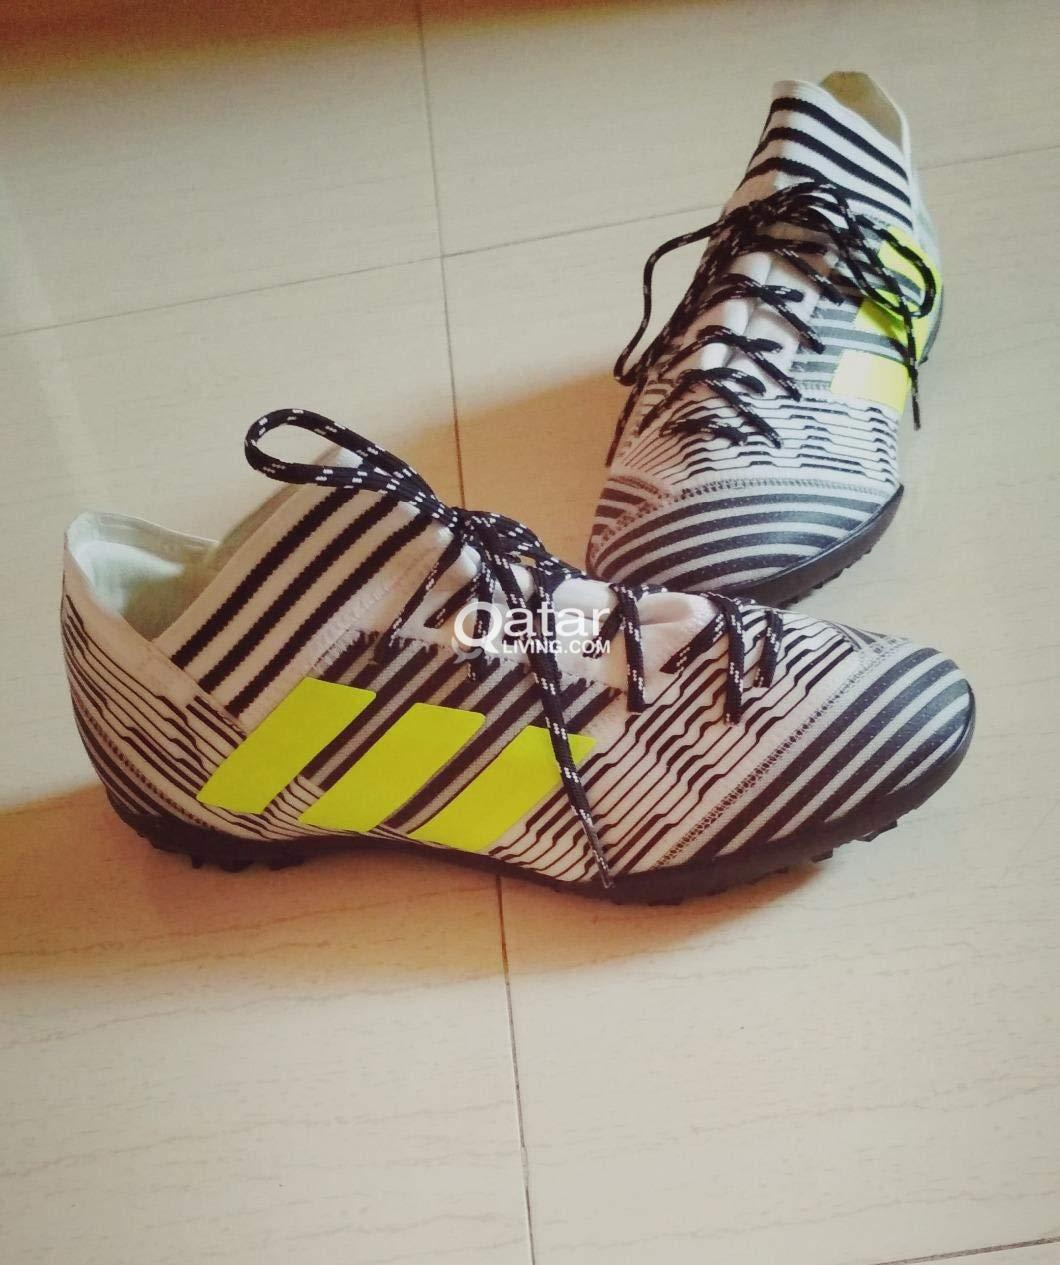 c648b40abdef Original Adidas Men s Nemeziz Tango 17.3 Tf Football Boots